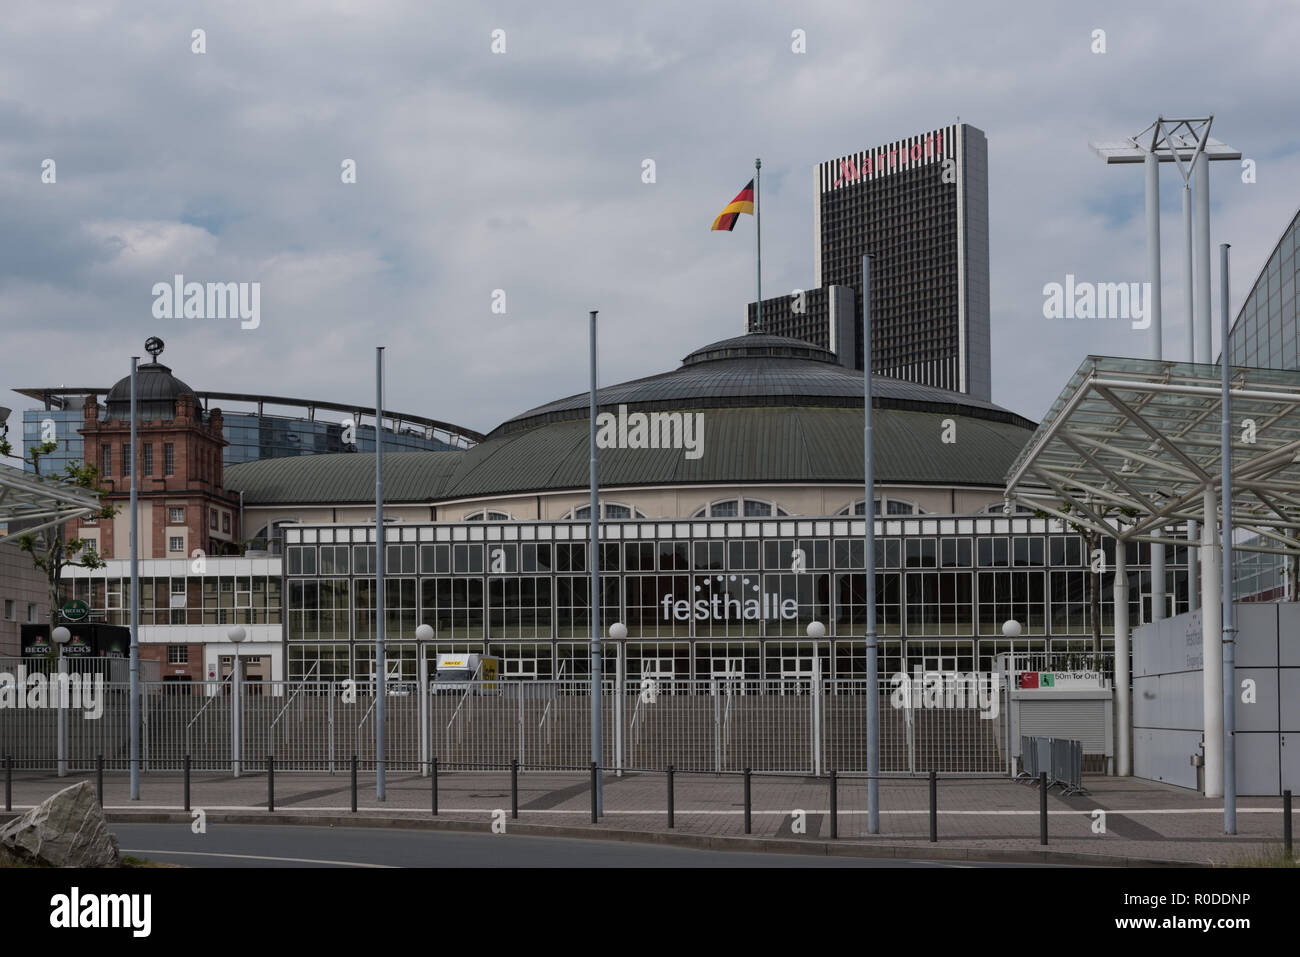 festhalle frankfurt,multi-purpose hall at the trade fair grounds of frankfurt, germany. - Stock Image